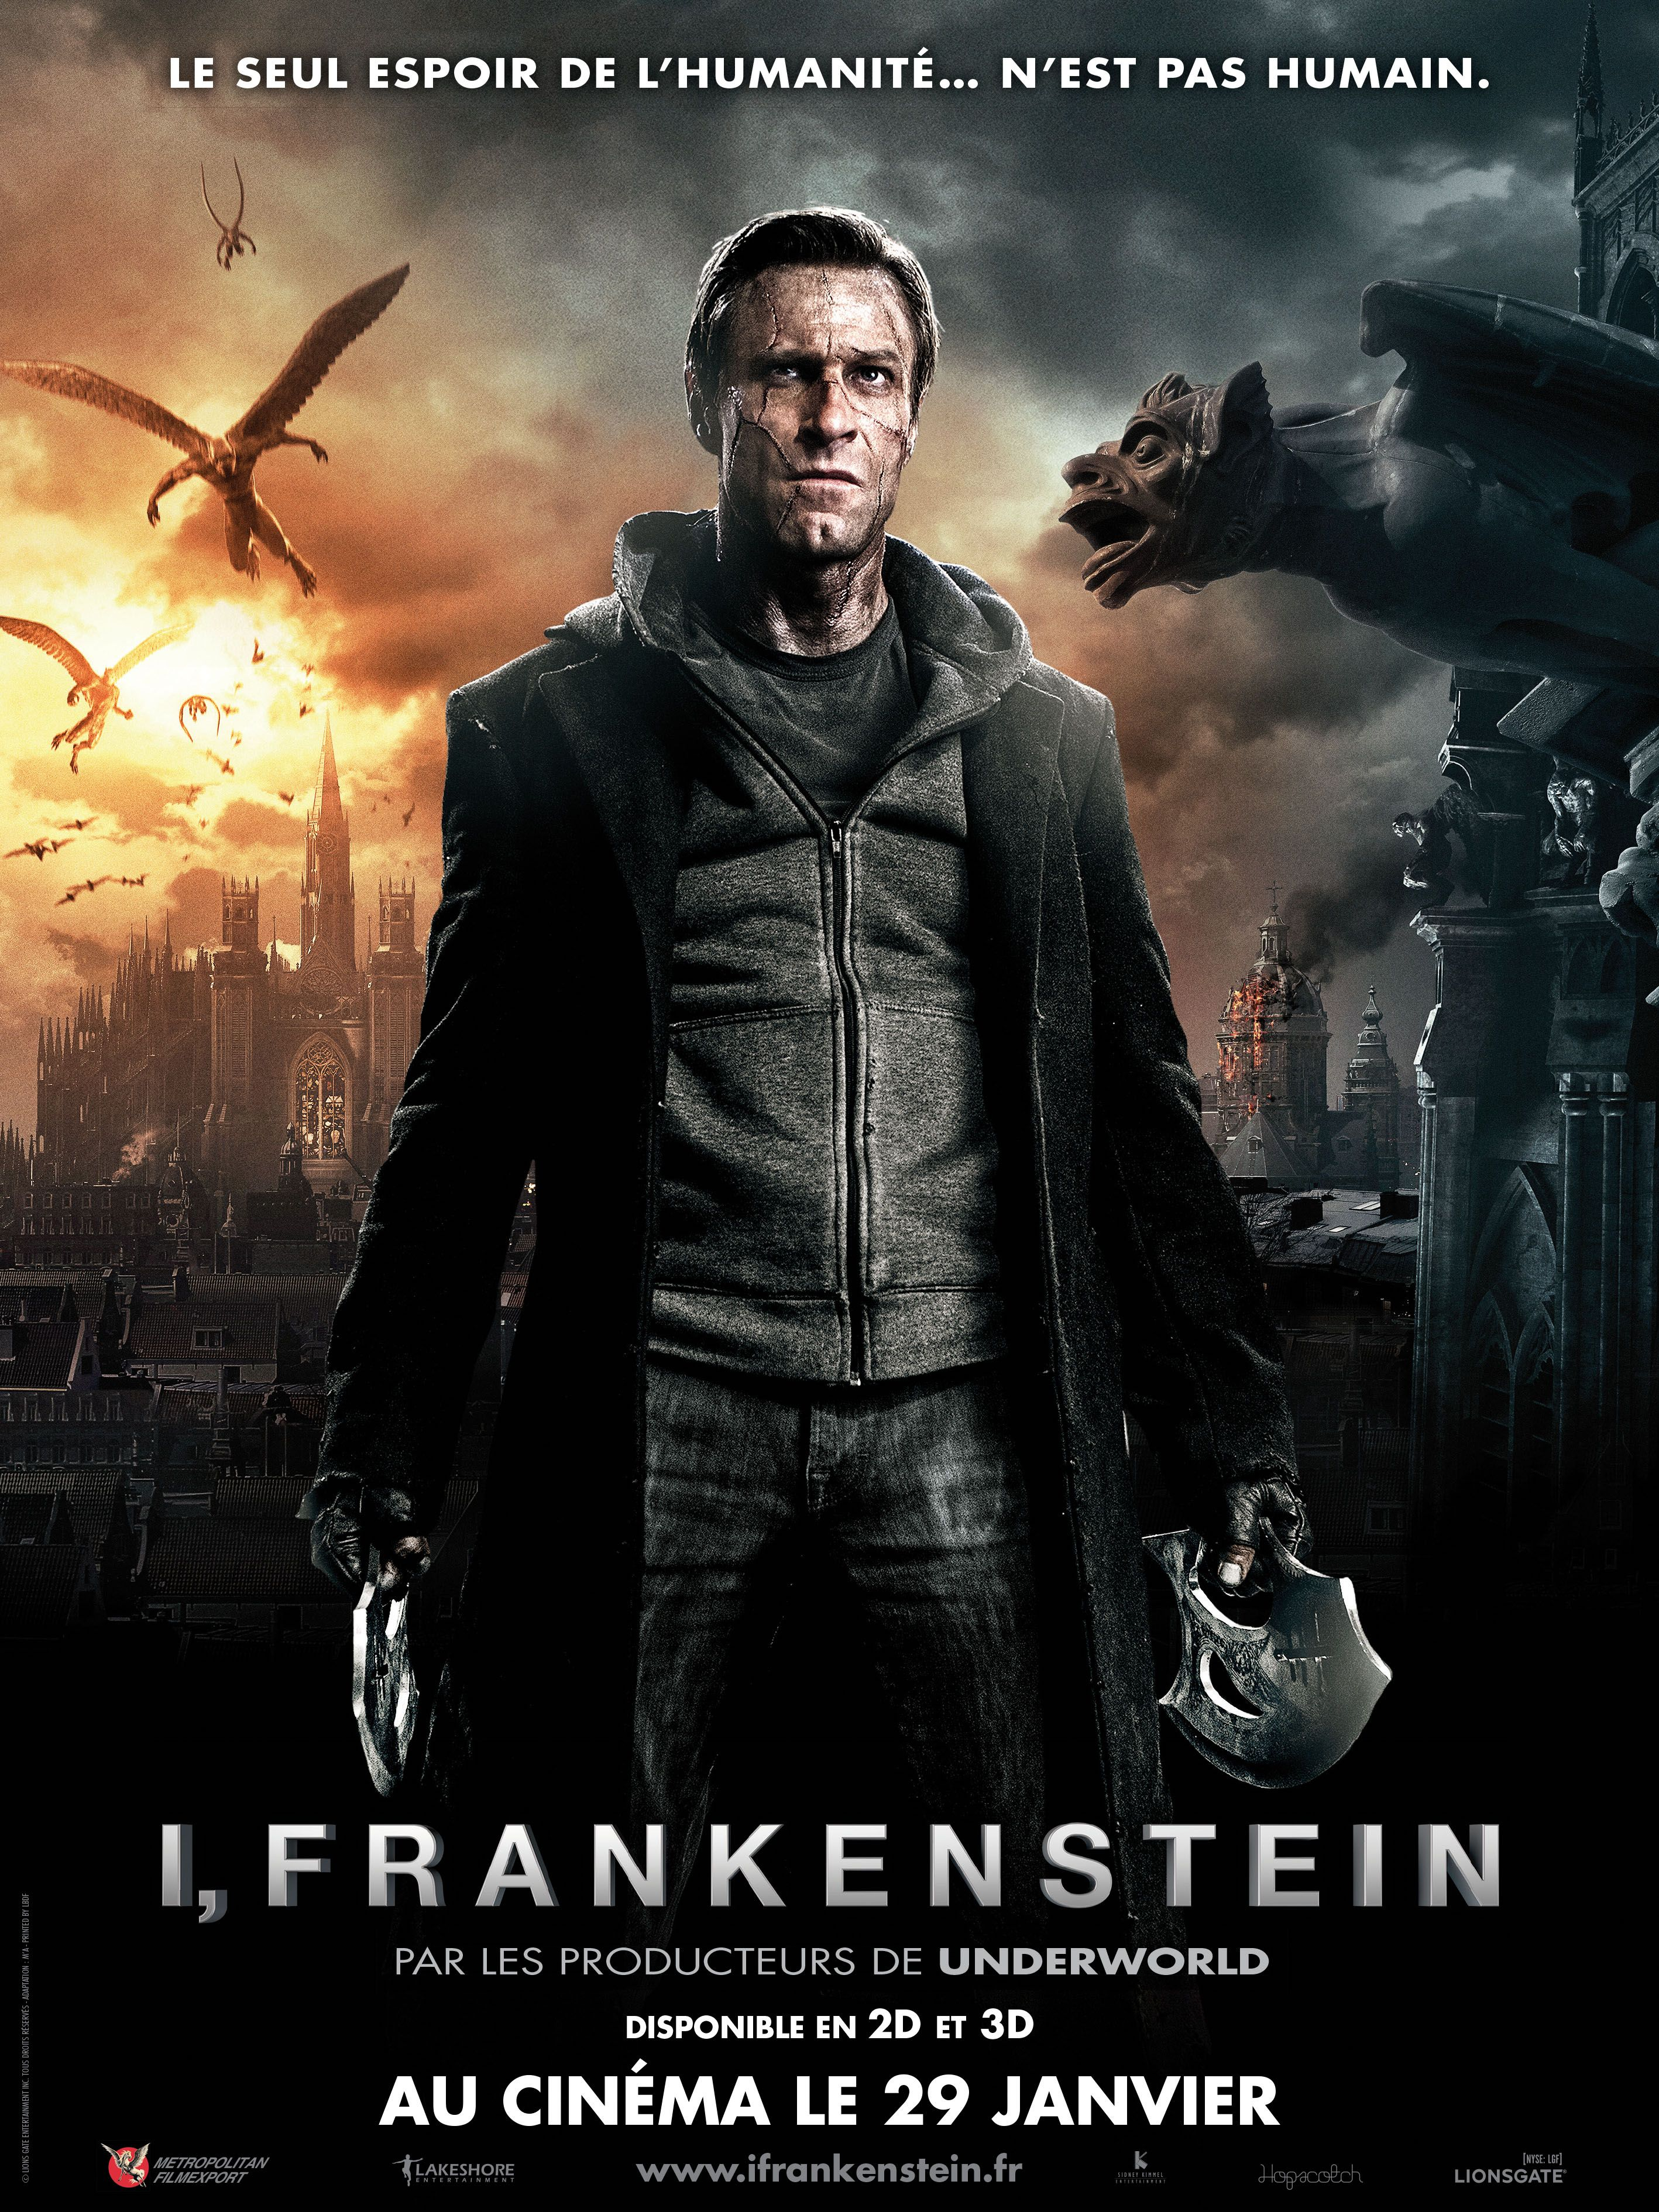 for   I  FRANKENSTEIN     I Frankenstein